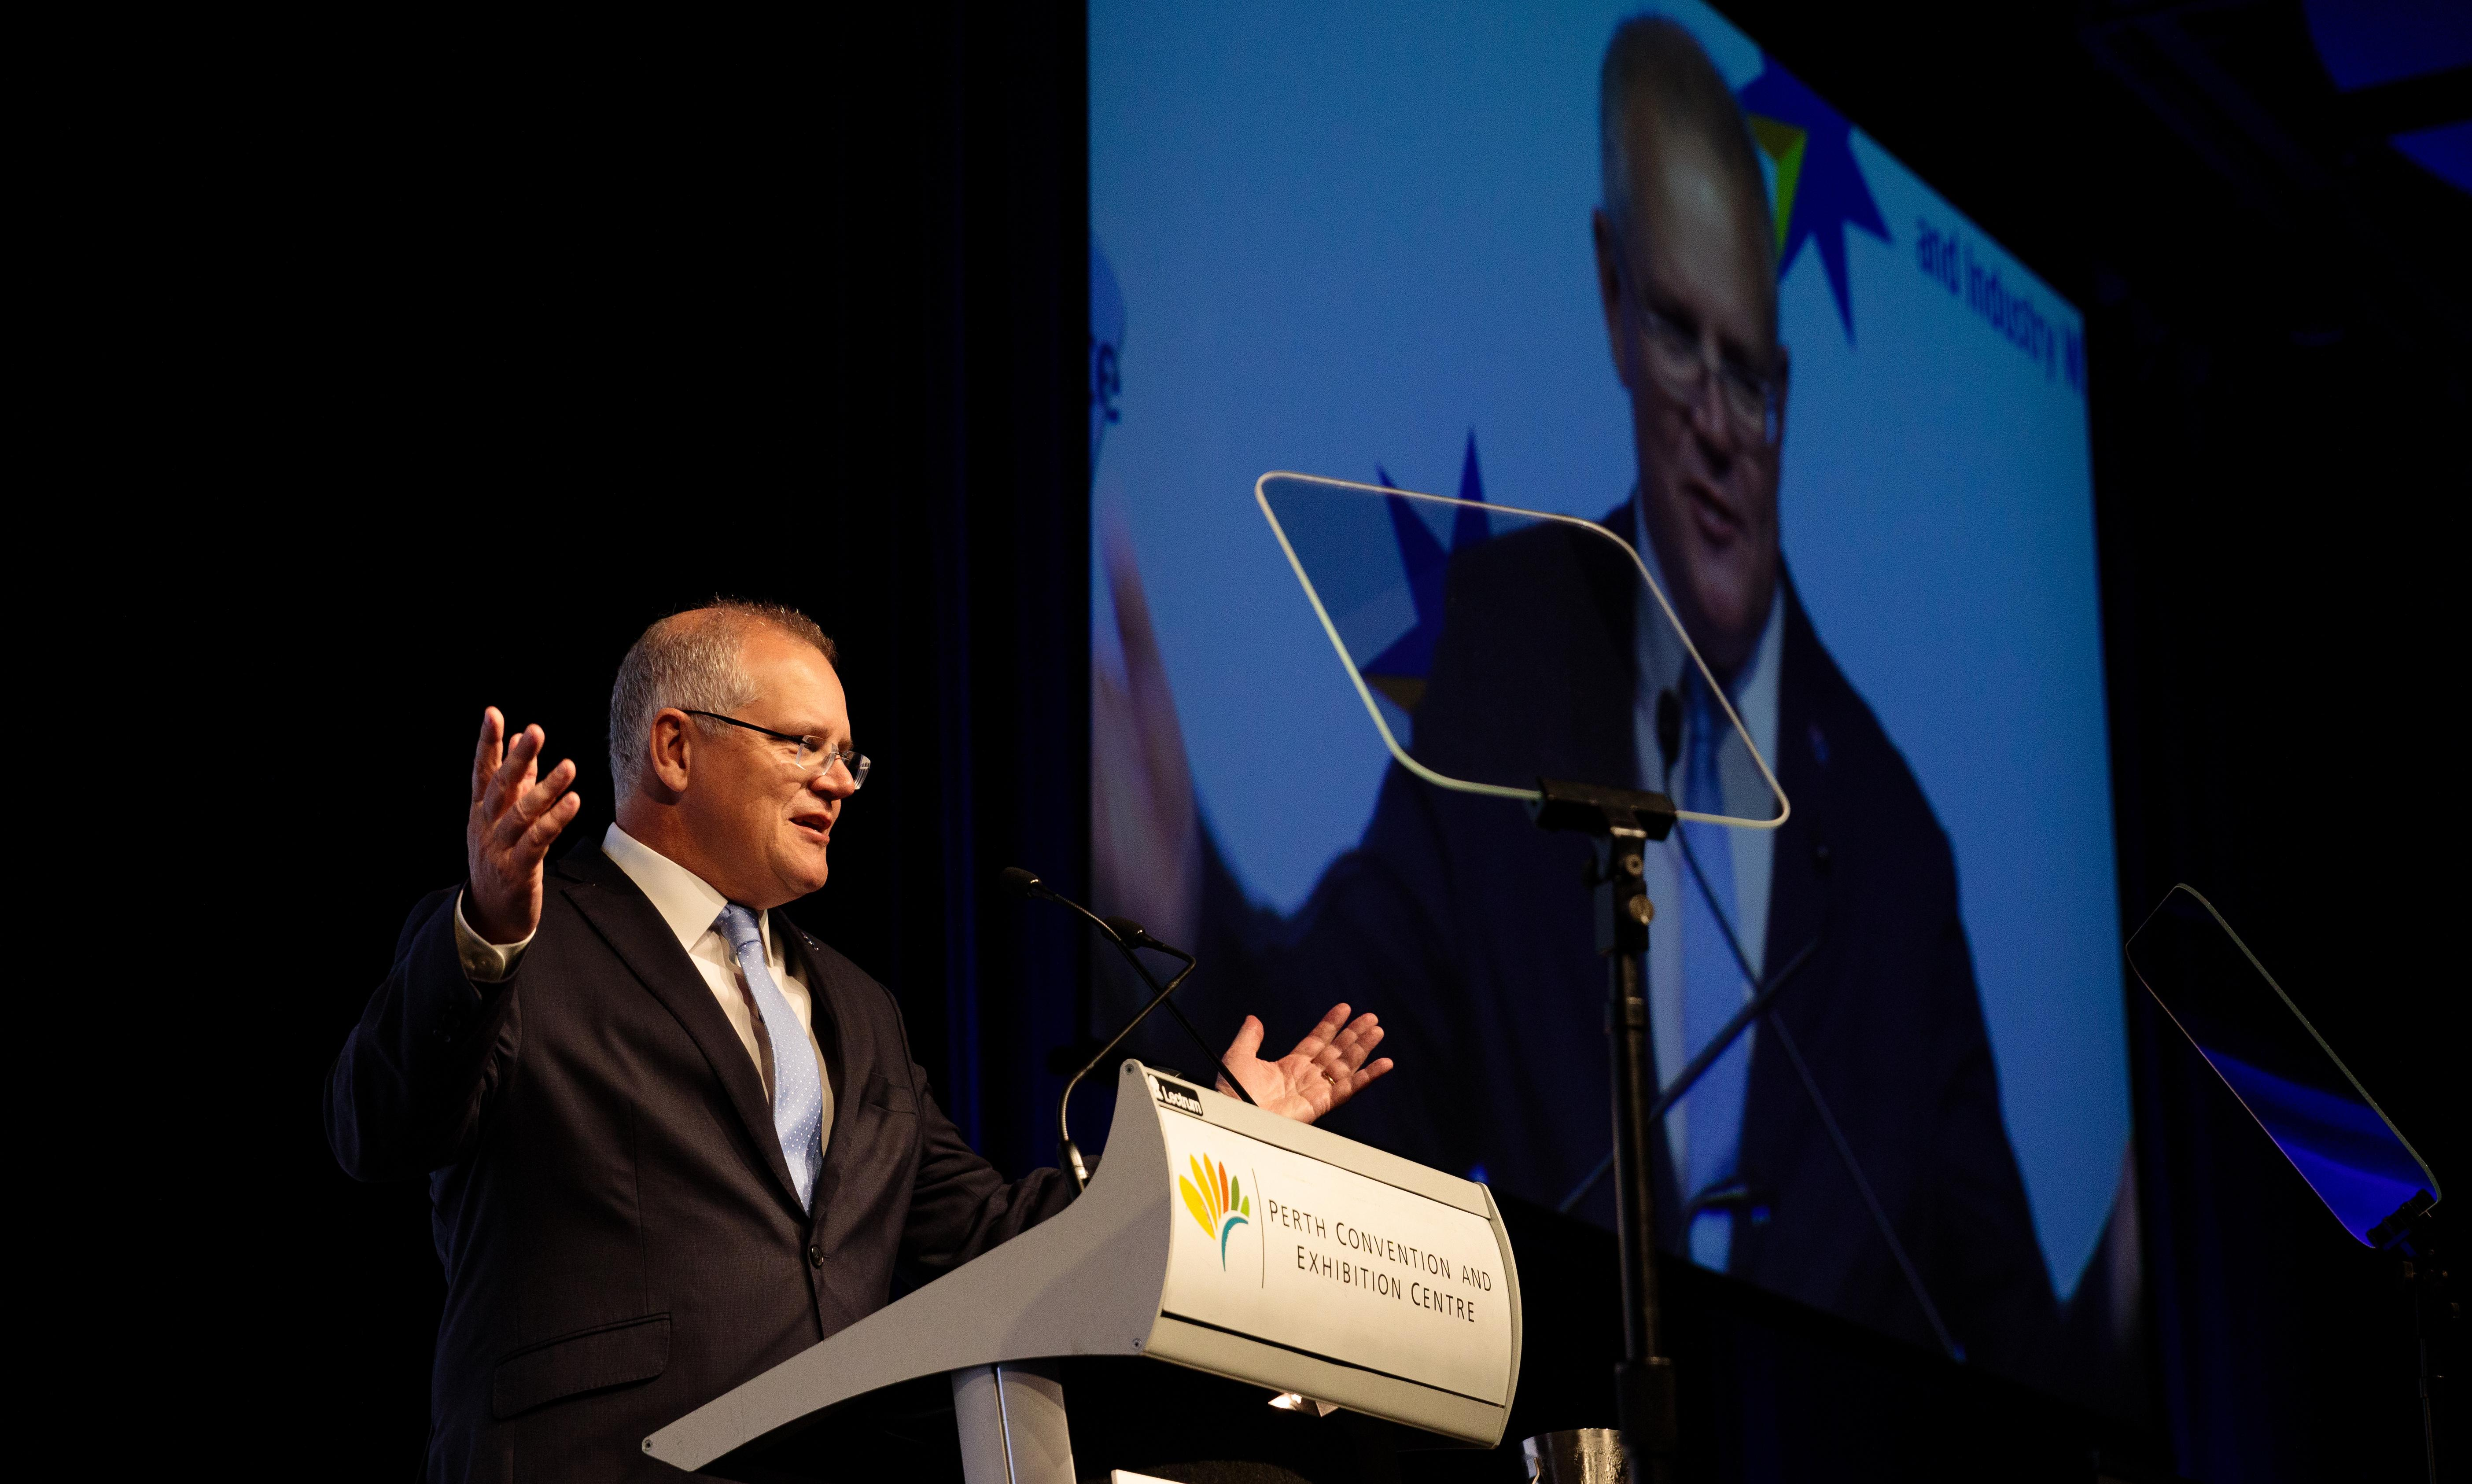 Scott Morrison flags Trump-style economic plan in pledge to cut more red tape